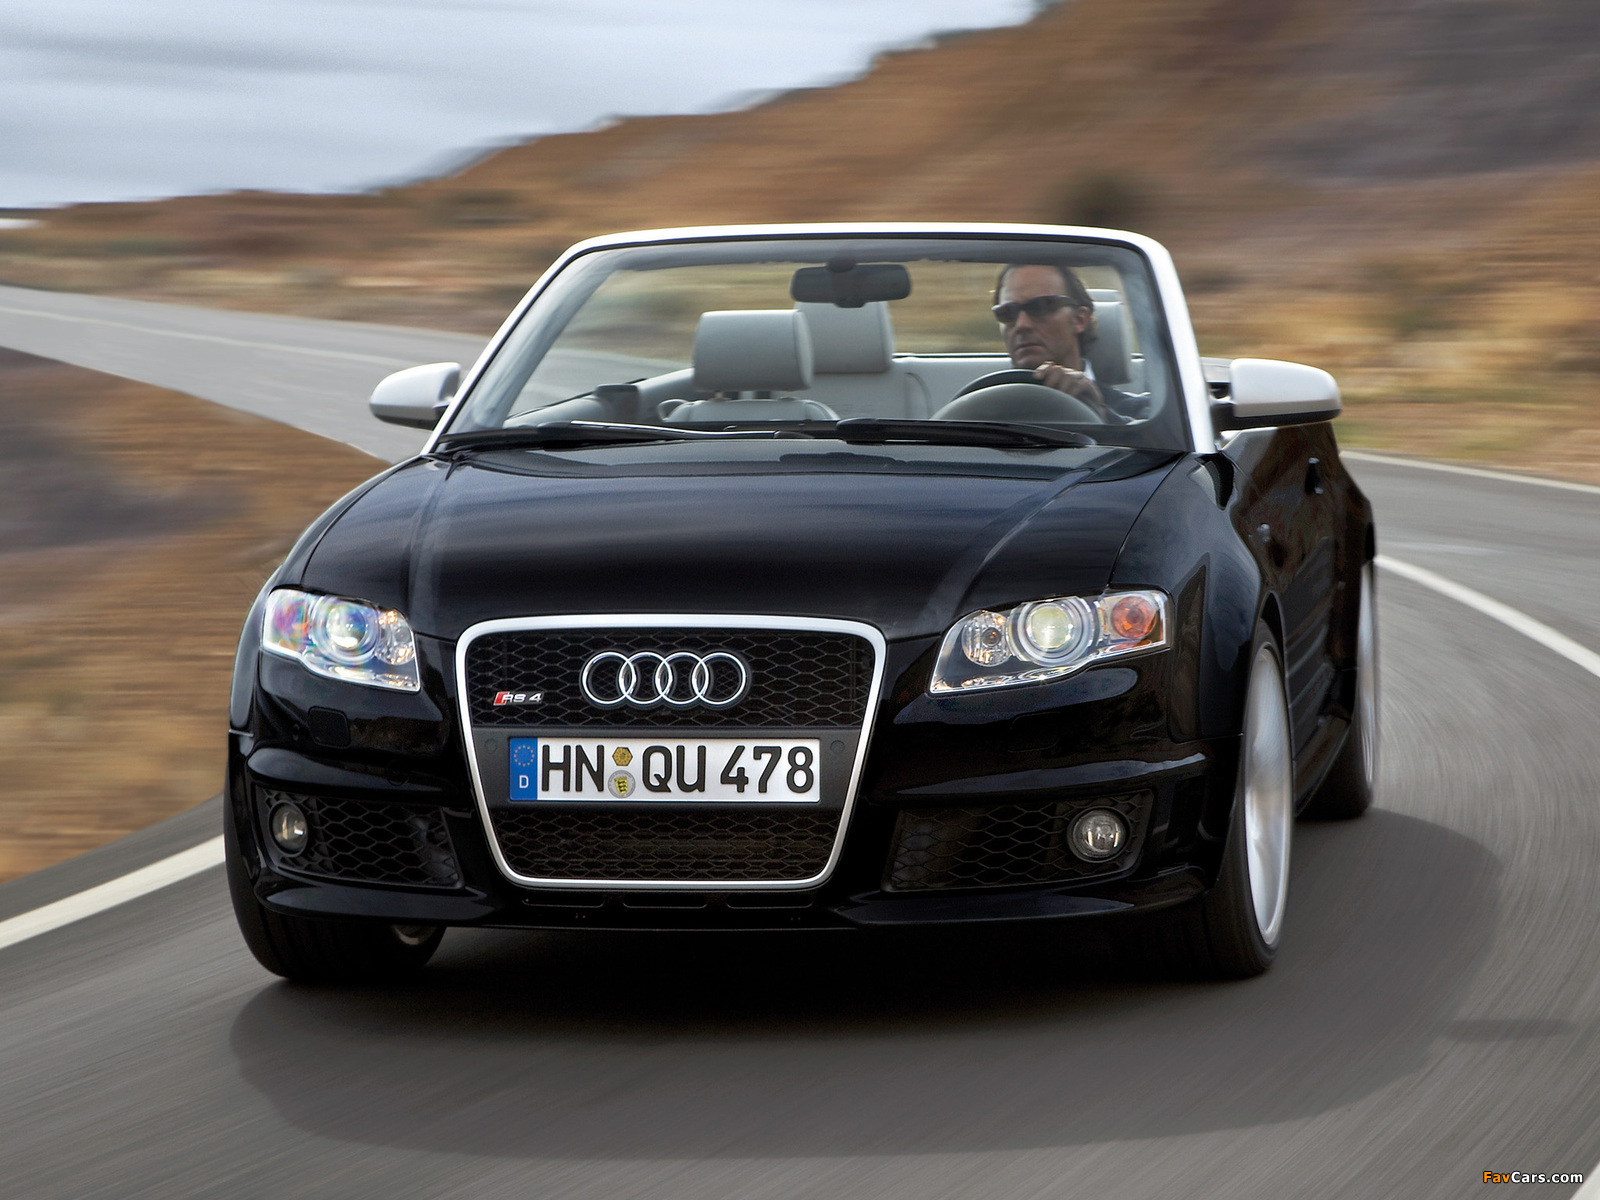 audi rs4 cabriolet b7 8h 2006 08 photos 1600x1200. Black Bedroom Furniture Sets. Home Design Ideas